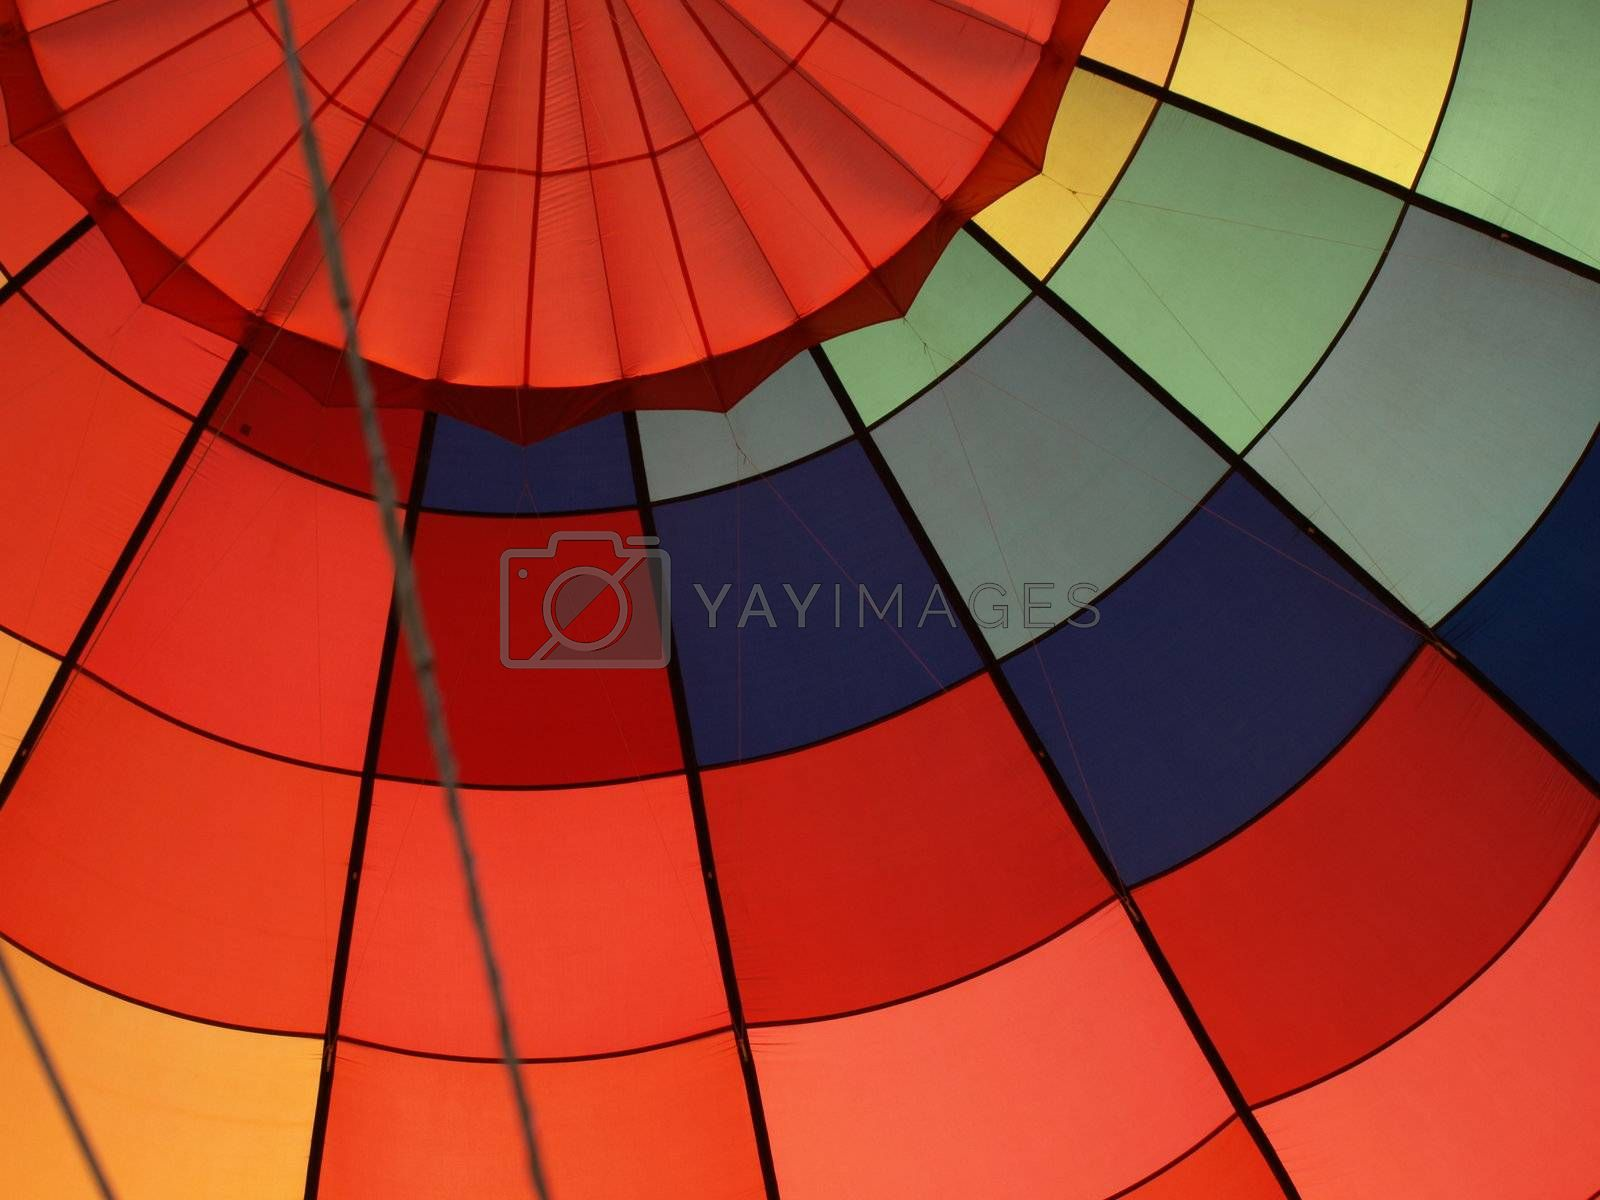 Inside the balloon by northwoodsphoto